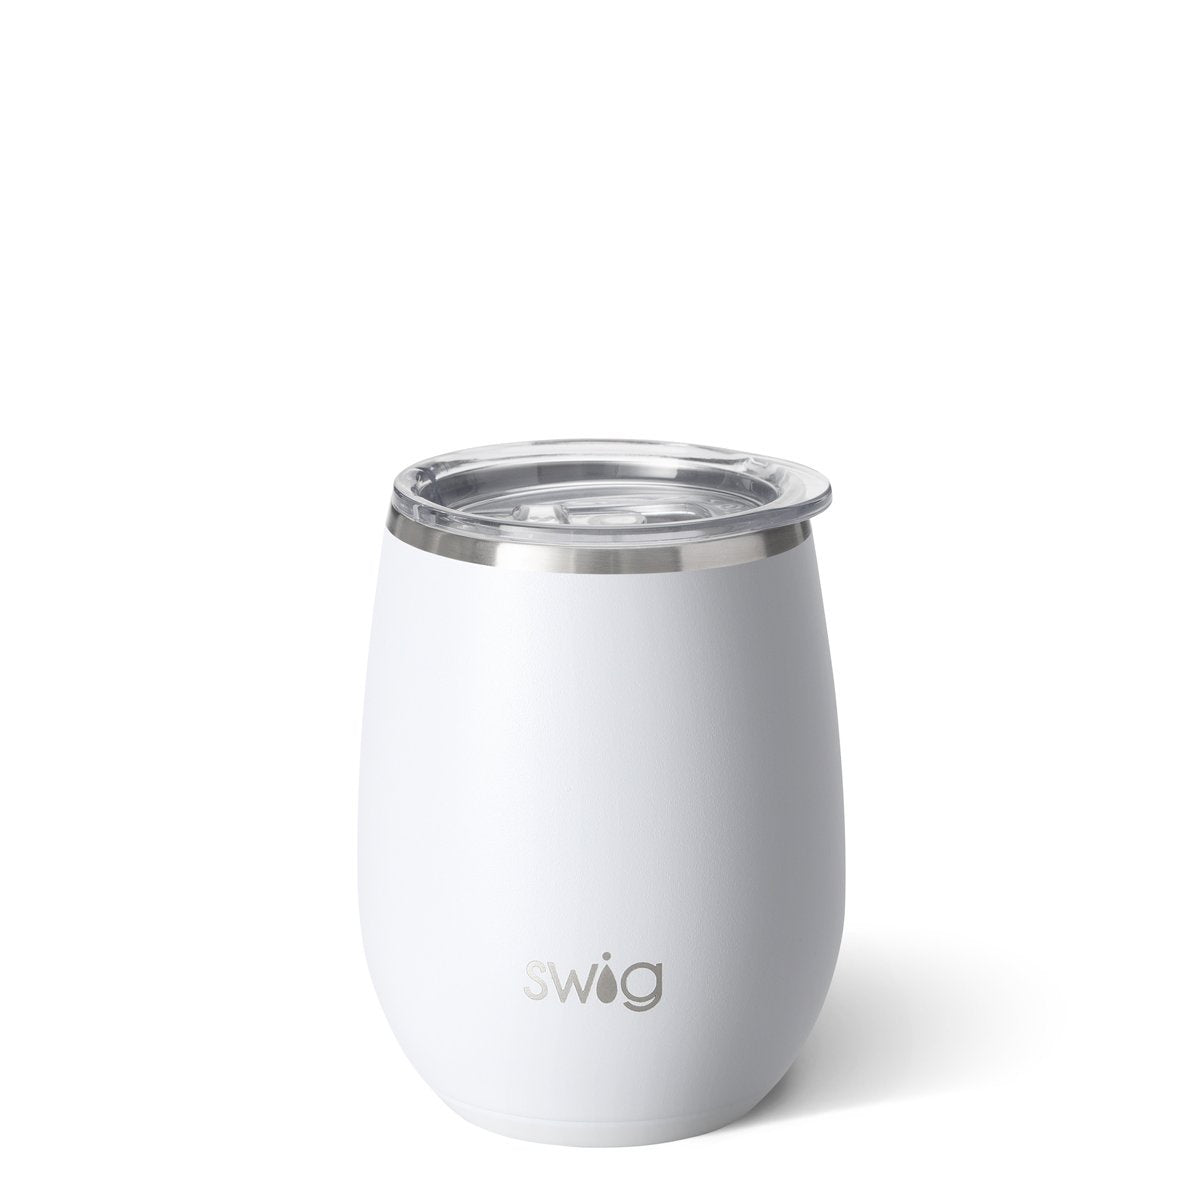 SWIG - 14 OZ STEMLESS WINE CUP IN MATTE WHITE